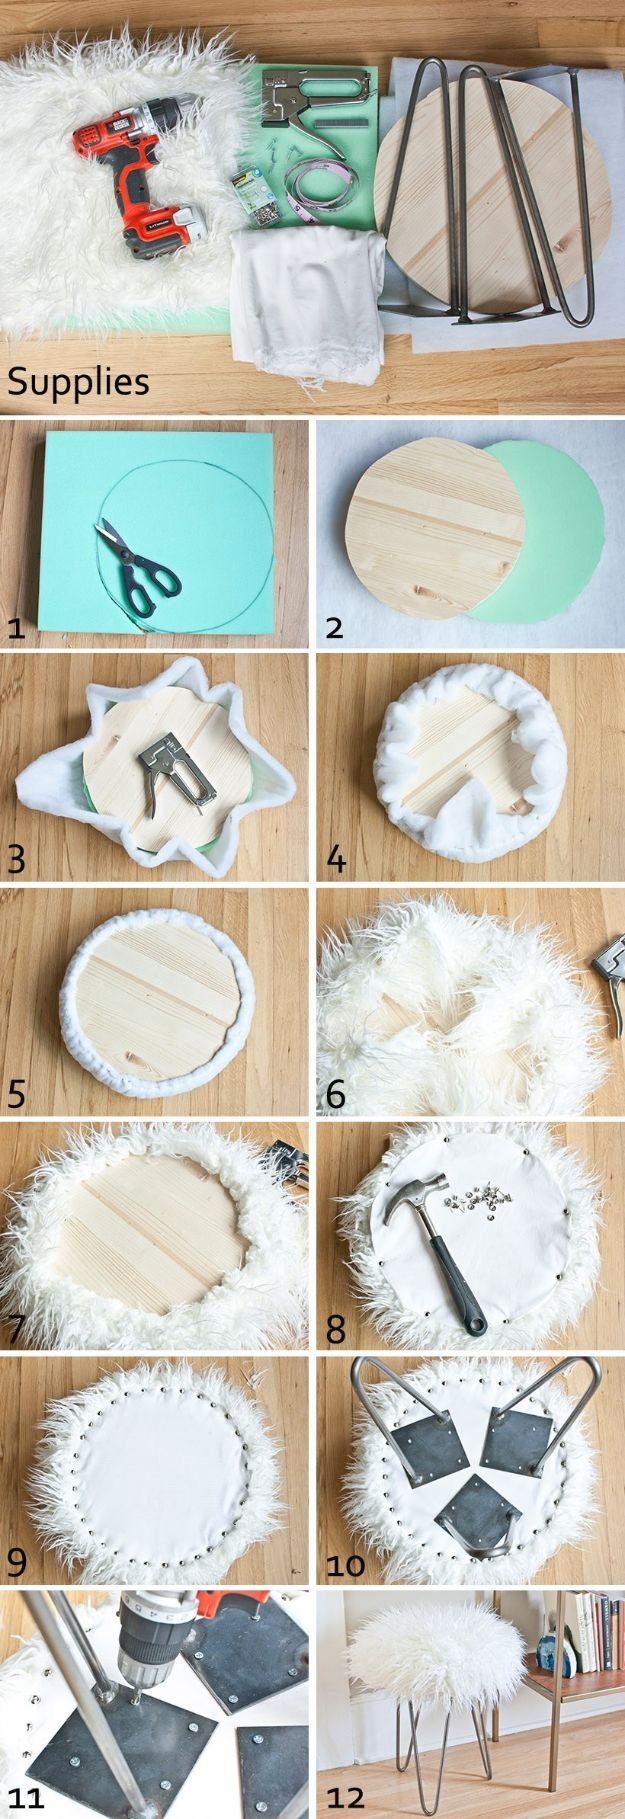 Do It Yourself Bedroom Decorations 42 diy room decor for girls bed canopy diy awesome do it yourself room Best 25 Diy Room Ideas Ideas On Pinterest Crafts With Mason Jars Cute Room Ideas And Easy Diy Room Decor